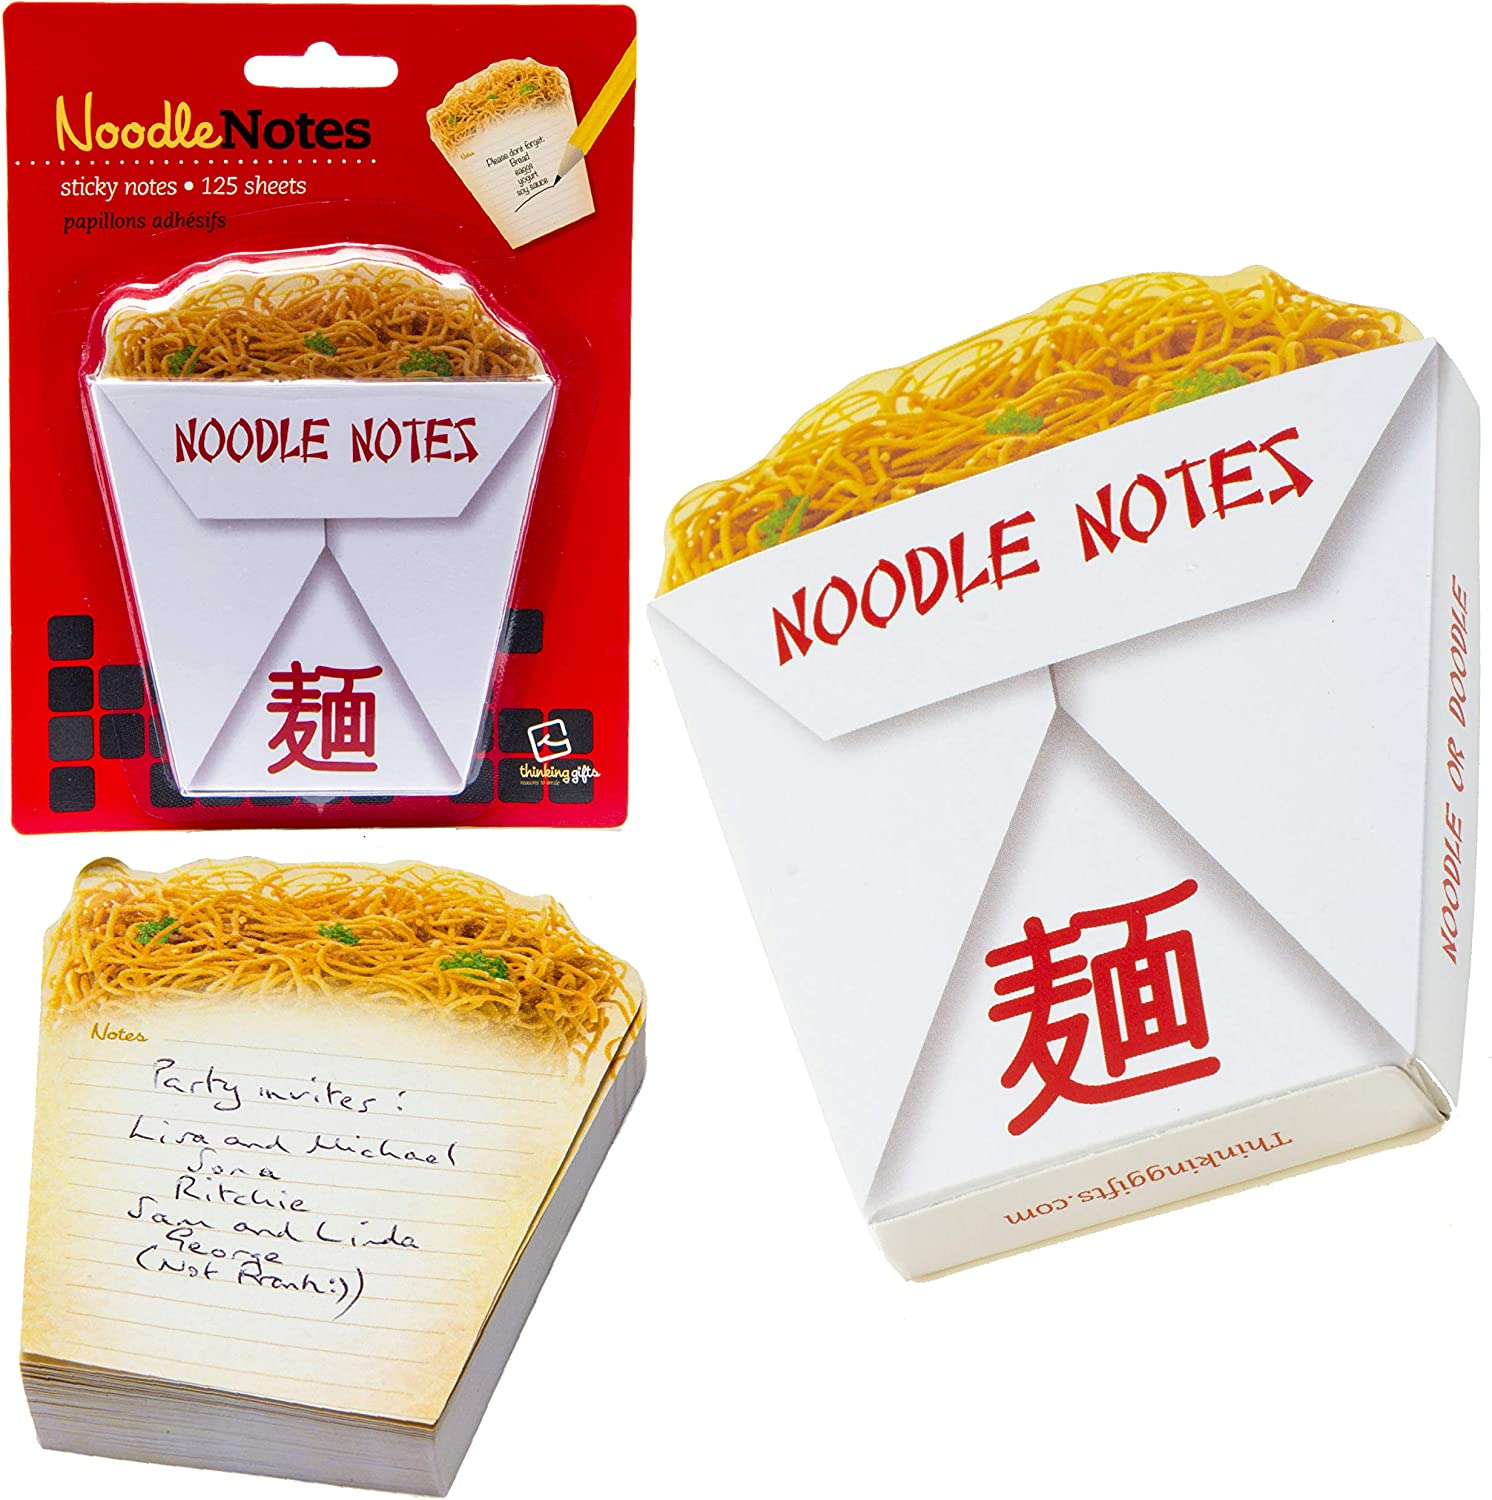 Yummy Sticky Notes Novelty Food Snacks School Office Notepad Memo Note Pad Gift - Noodles